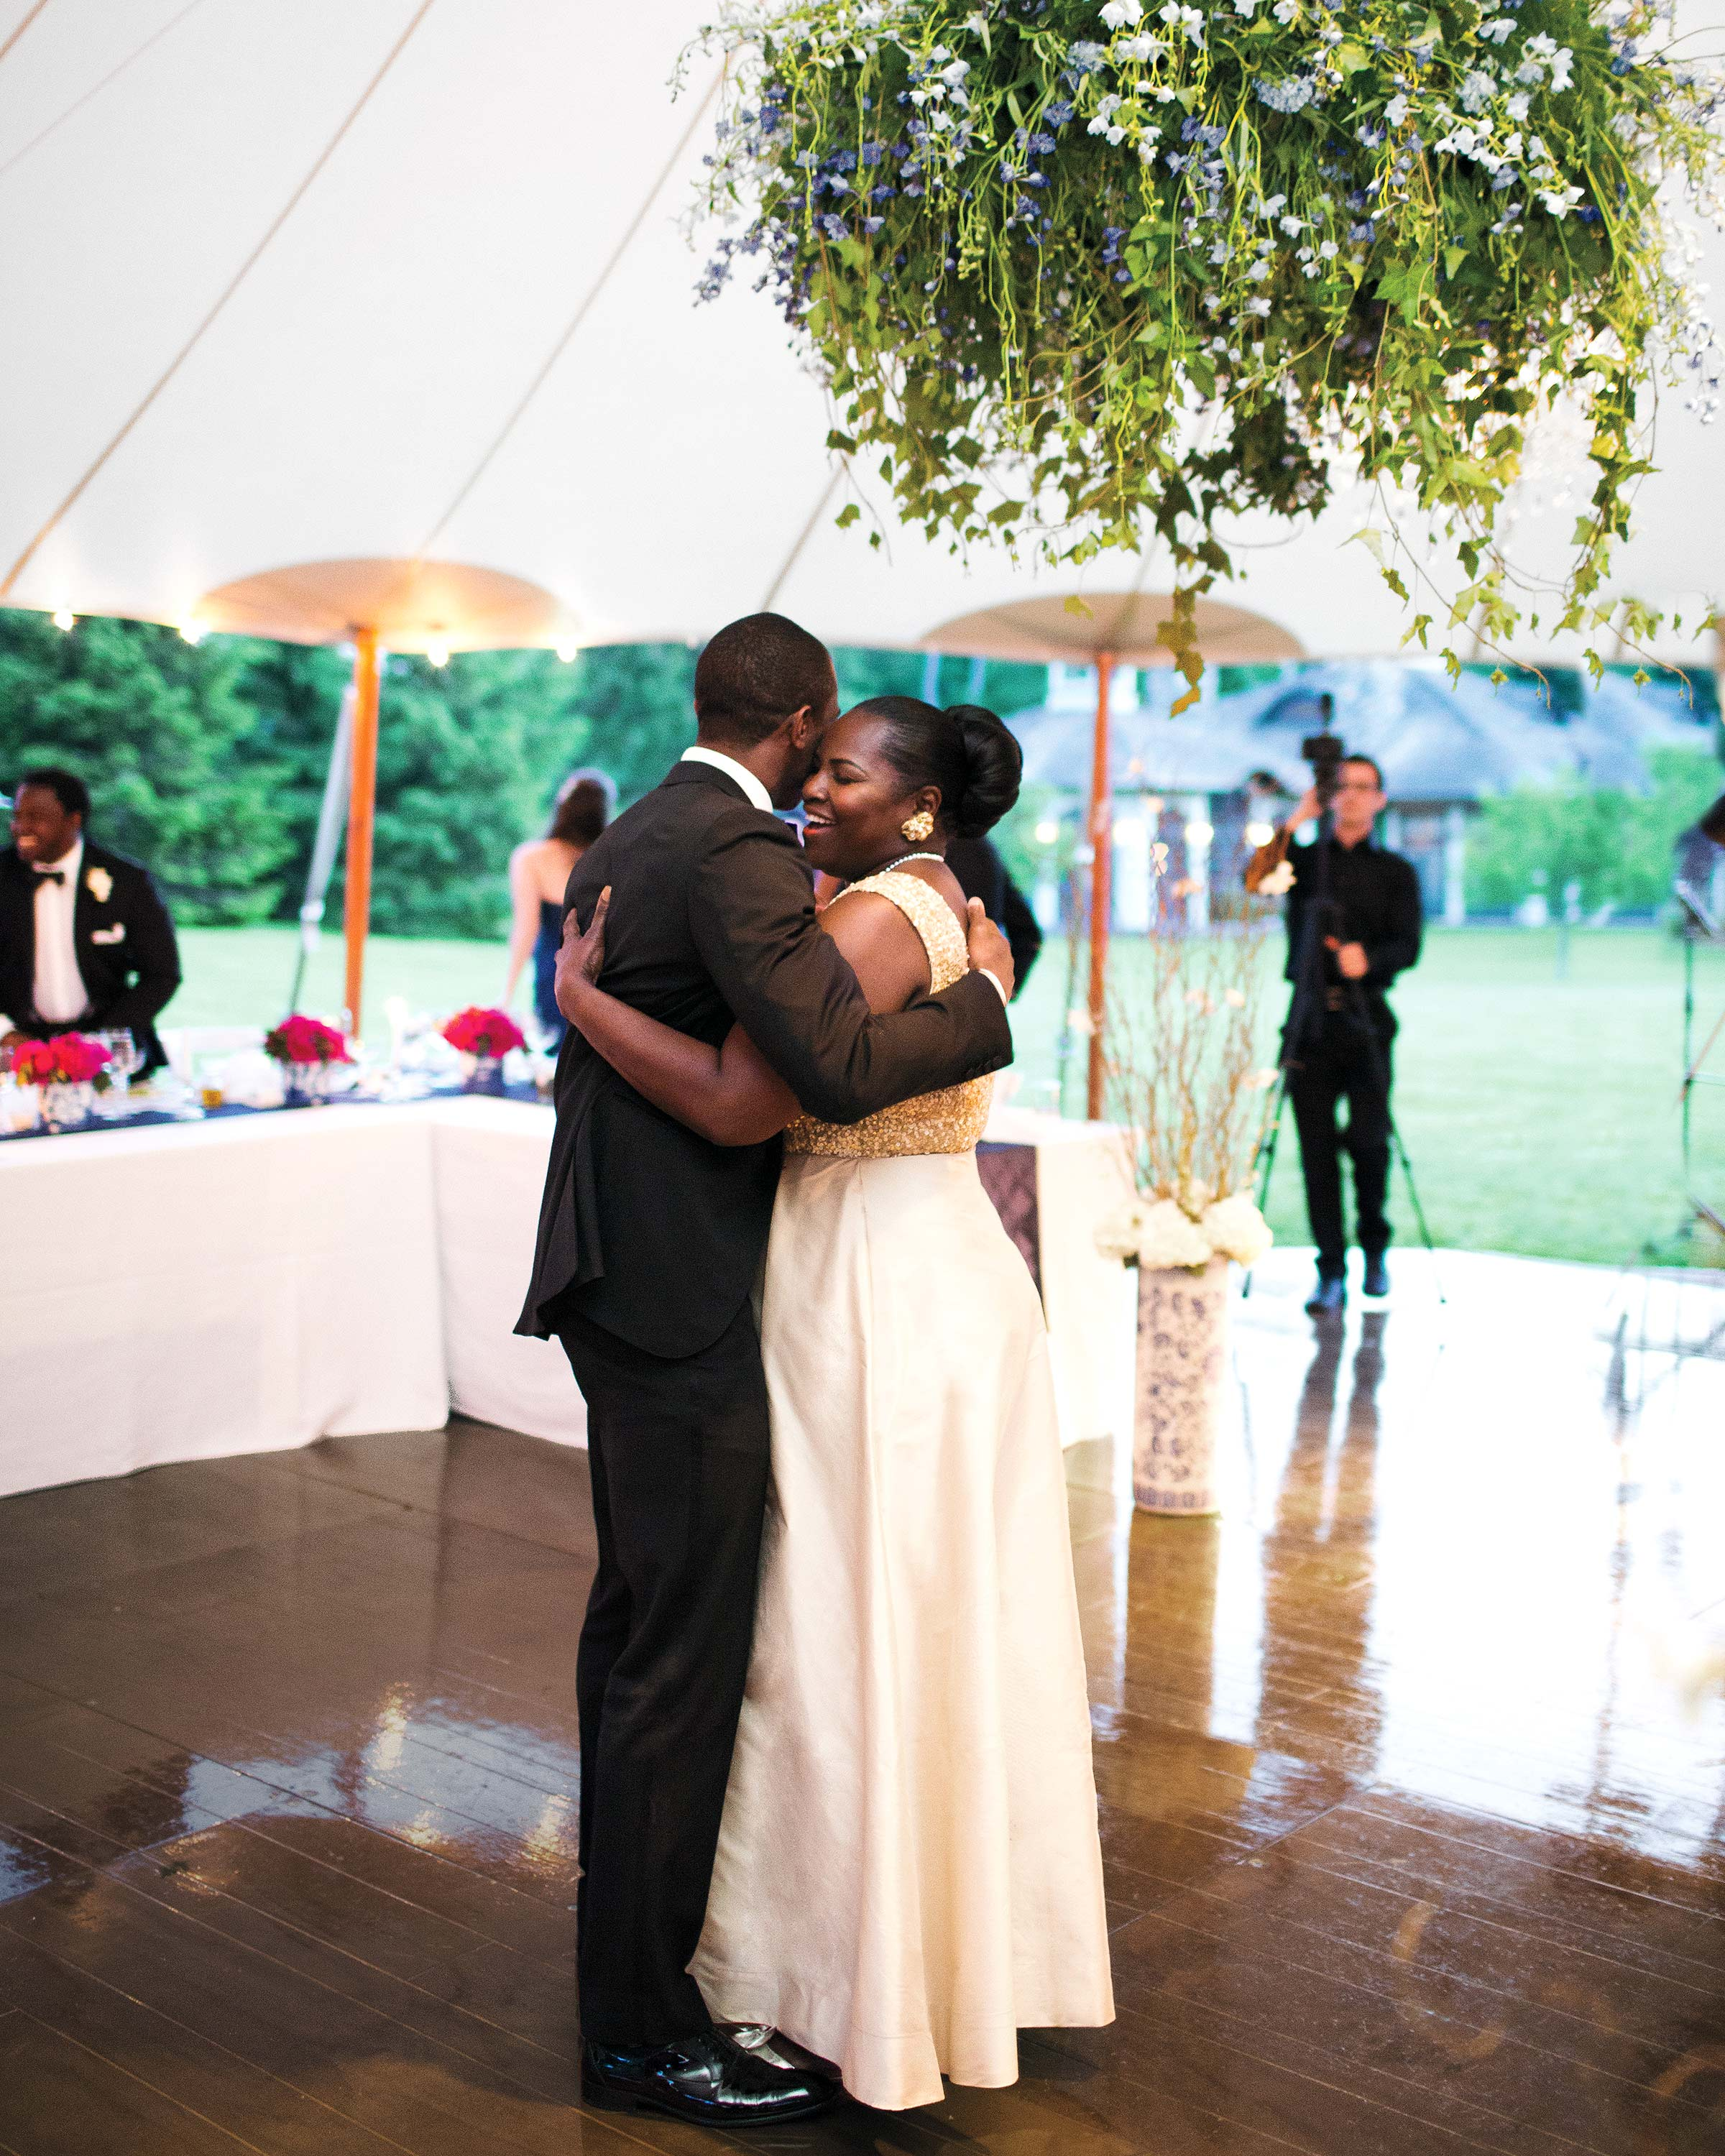 Mother Son Wedding Dance.The Sweetest Mother Son Dance Photos From Real Weddings Martha